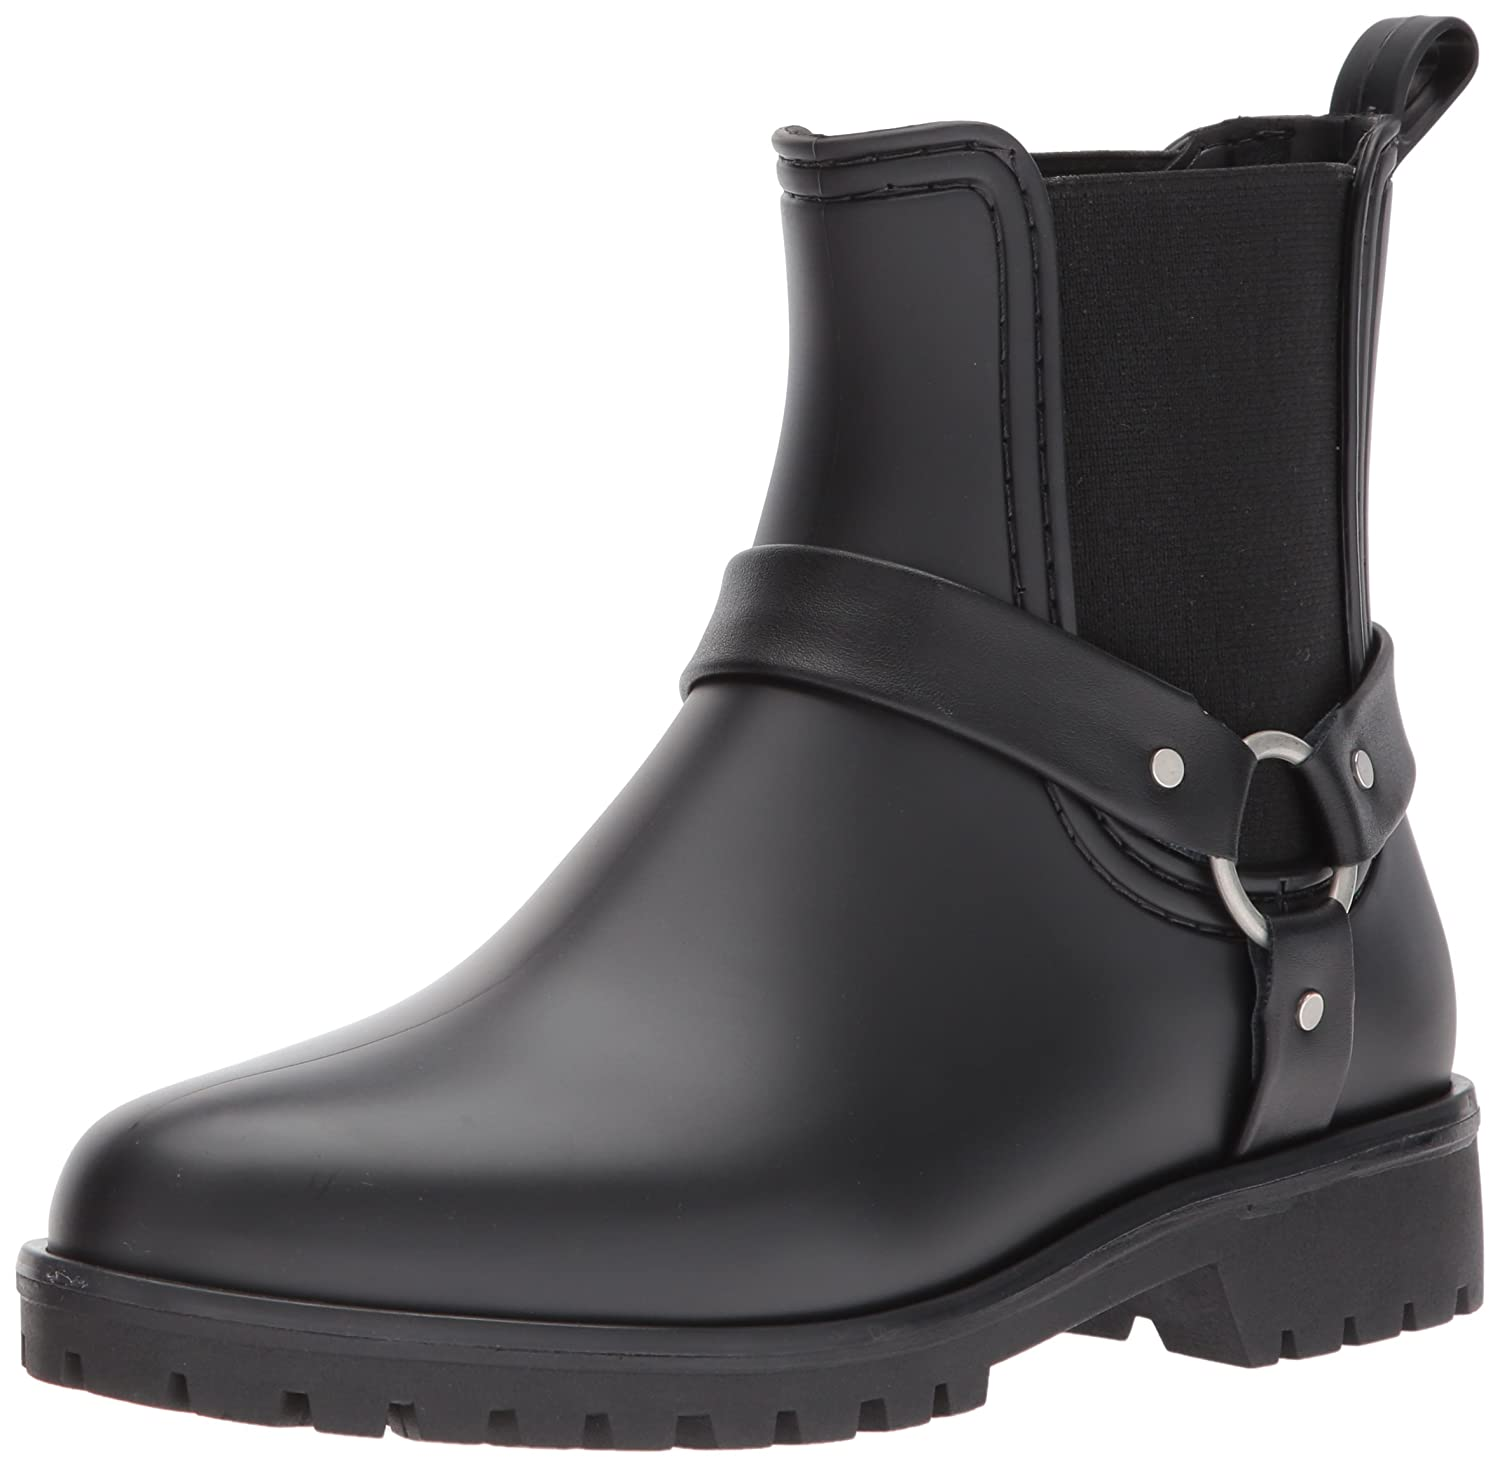 Bernardo Women's Zoe Rain Boot B06XYX93FJ 7 B(M) US|Black Rubber